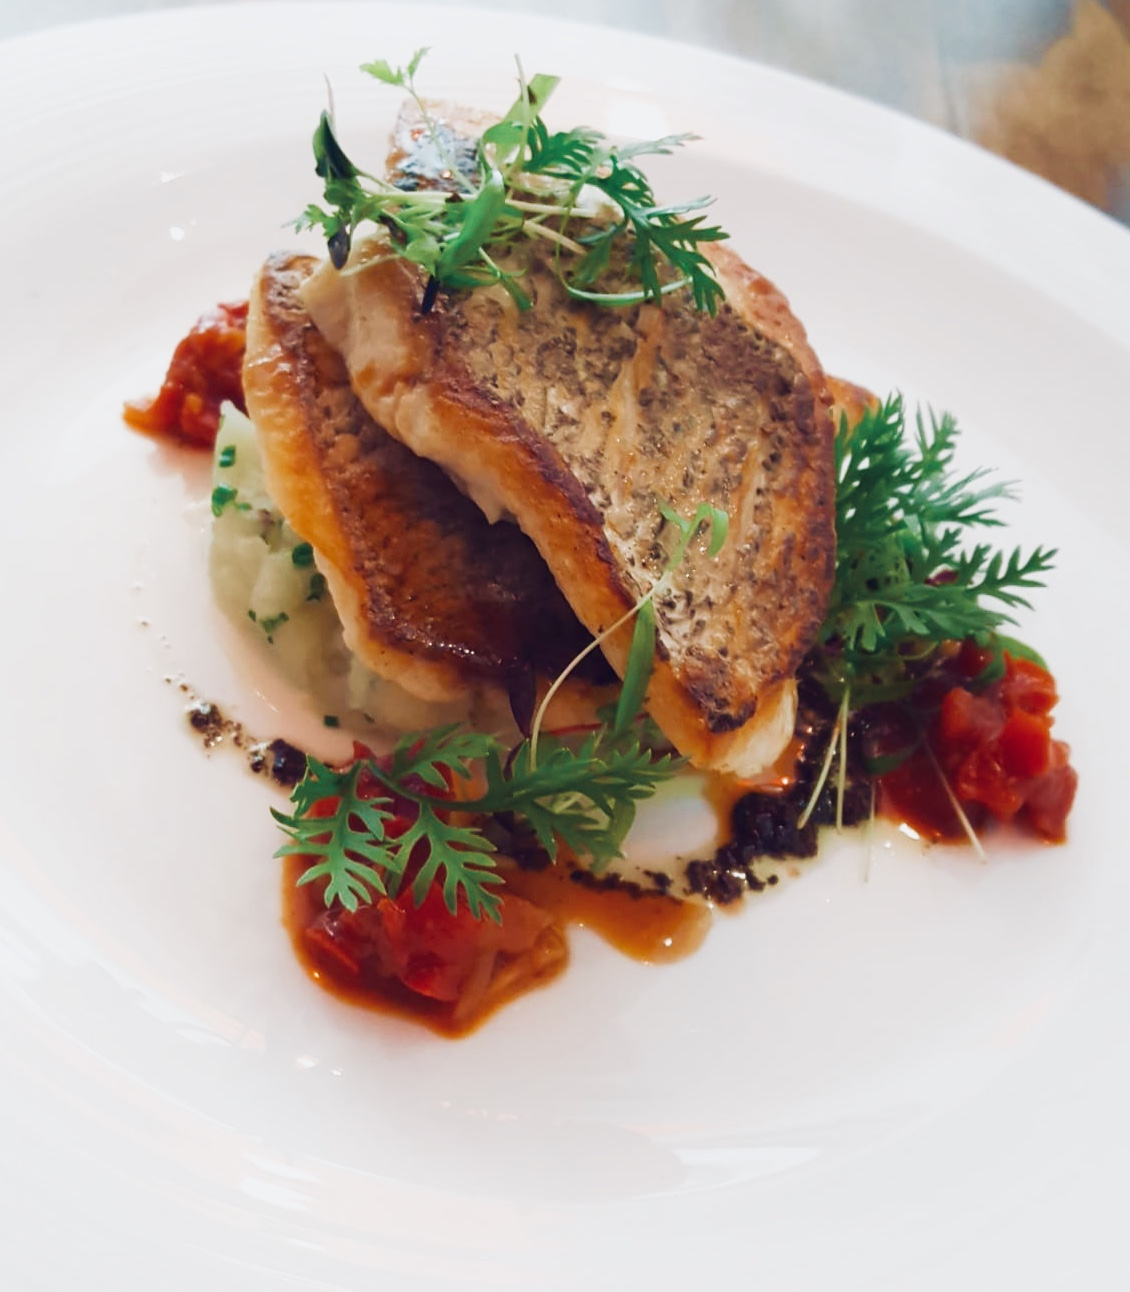 Bar-A-Thym-French-Restaurant-Grilled-Snapper-Fillet-Capsicum-Piperade-Crushed Potatoes-Tapenade.jpg